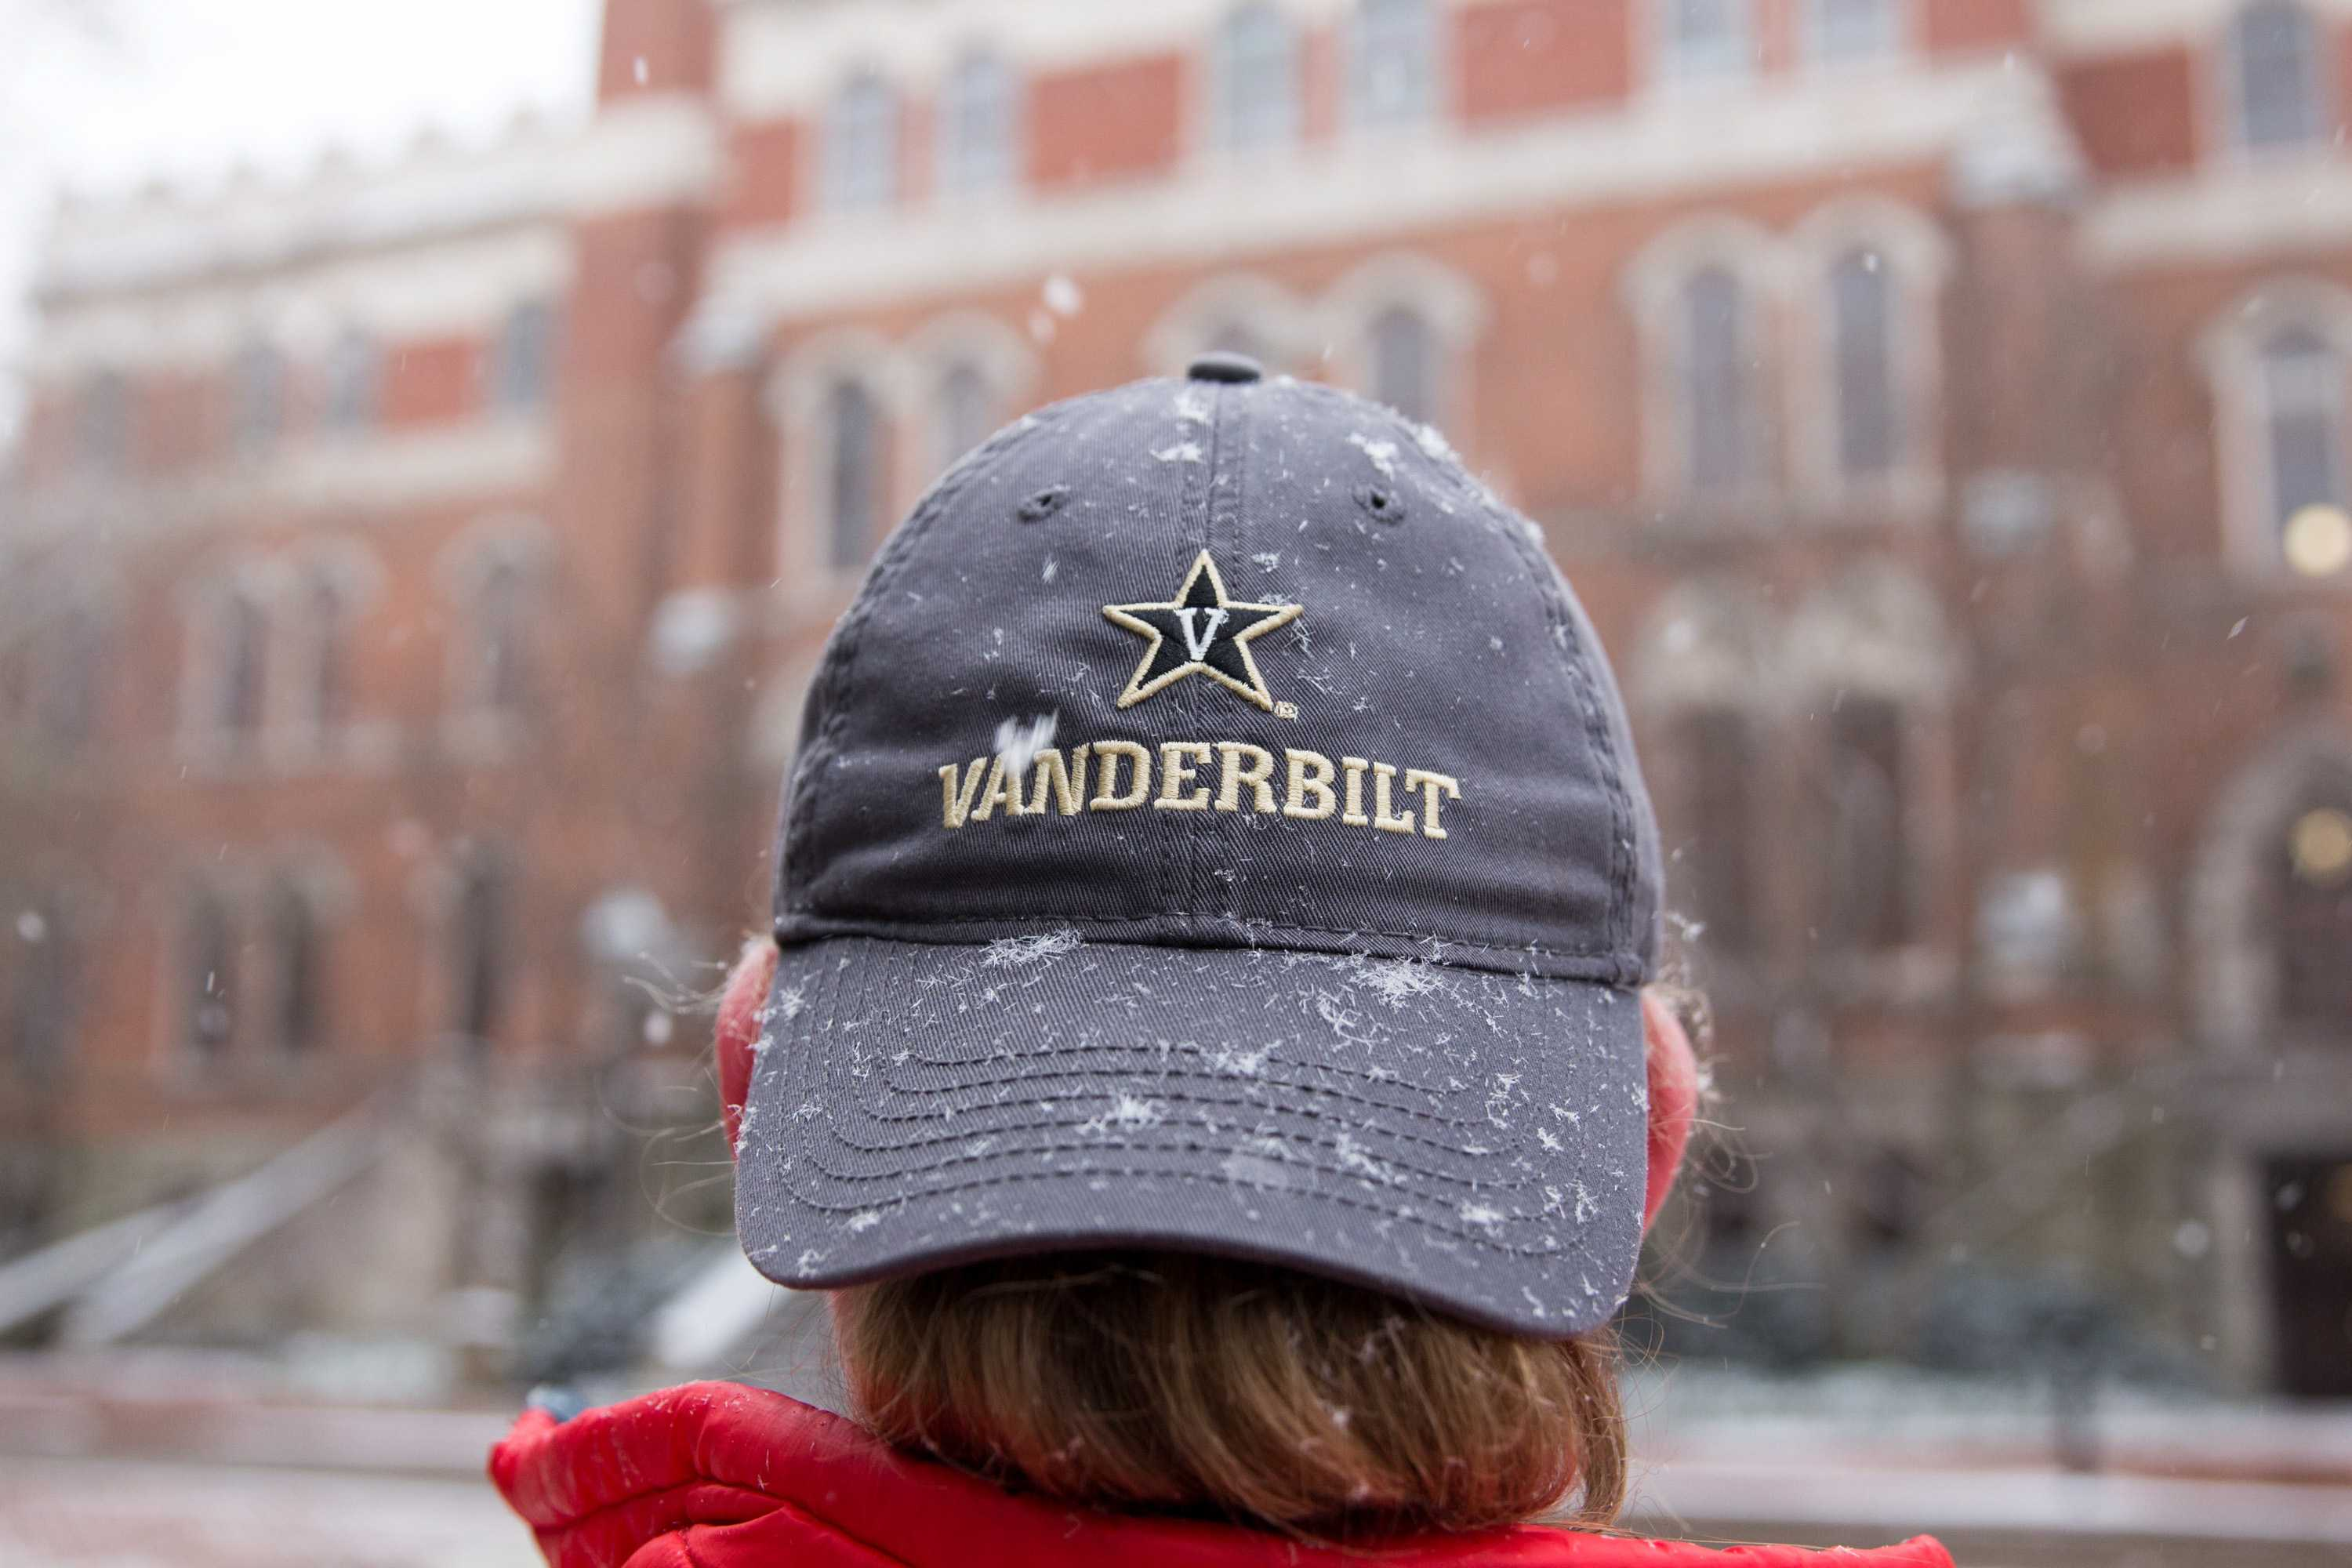 IN PHOTOS: Snow & ice blanket Vanderbilt